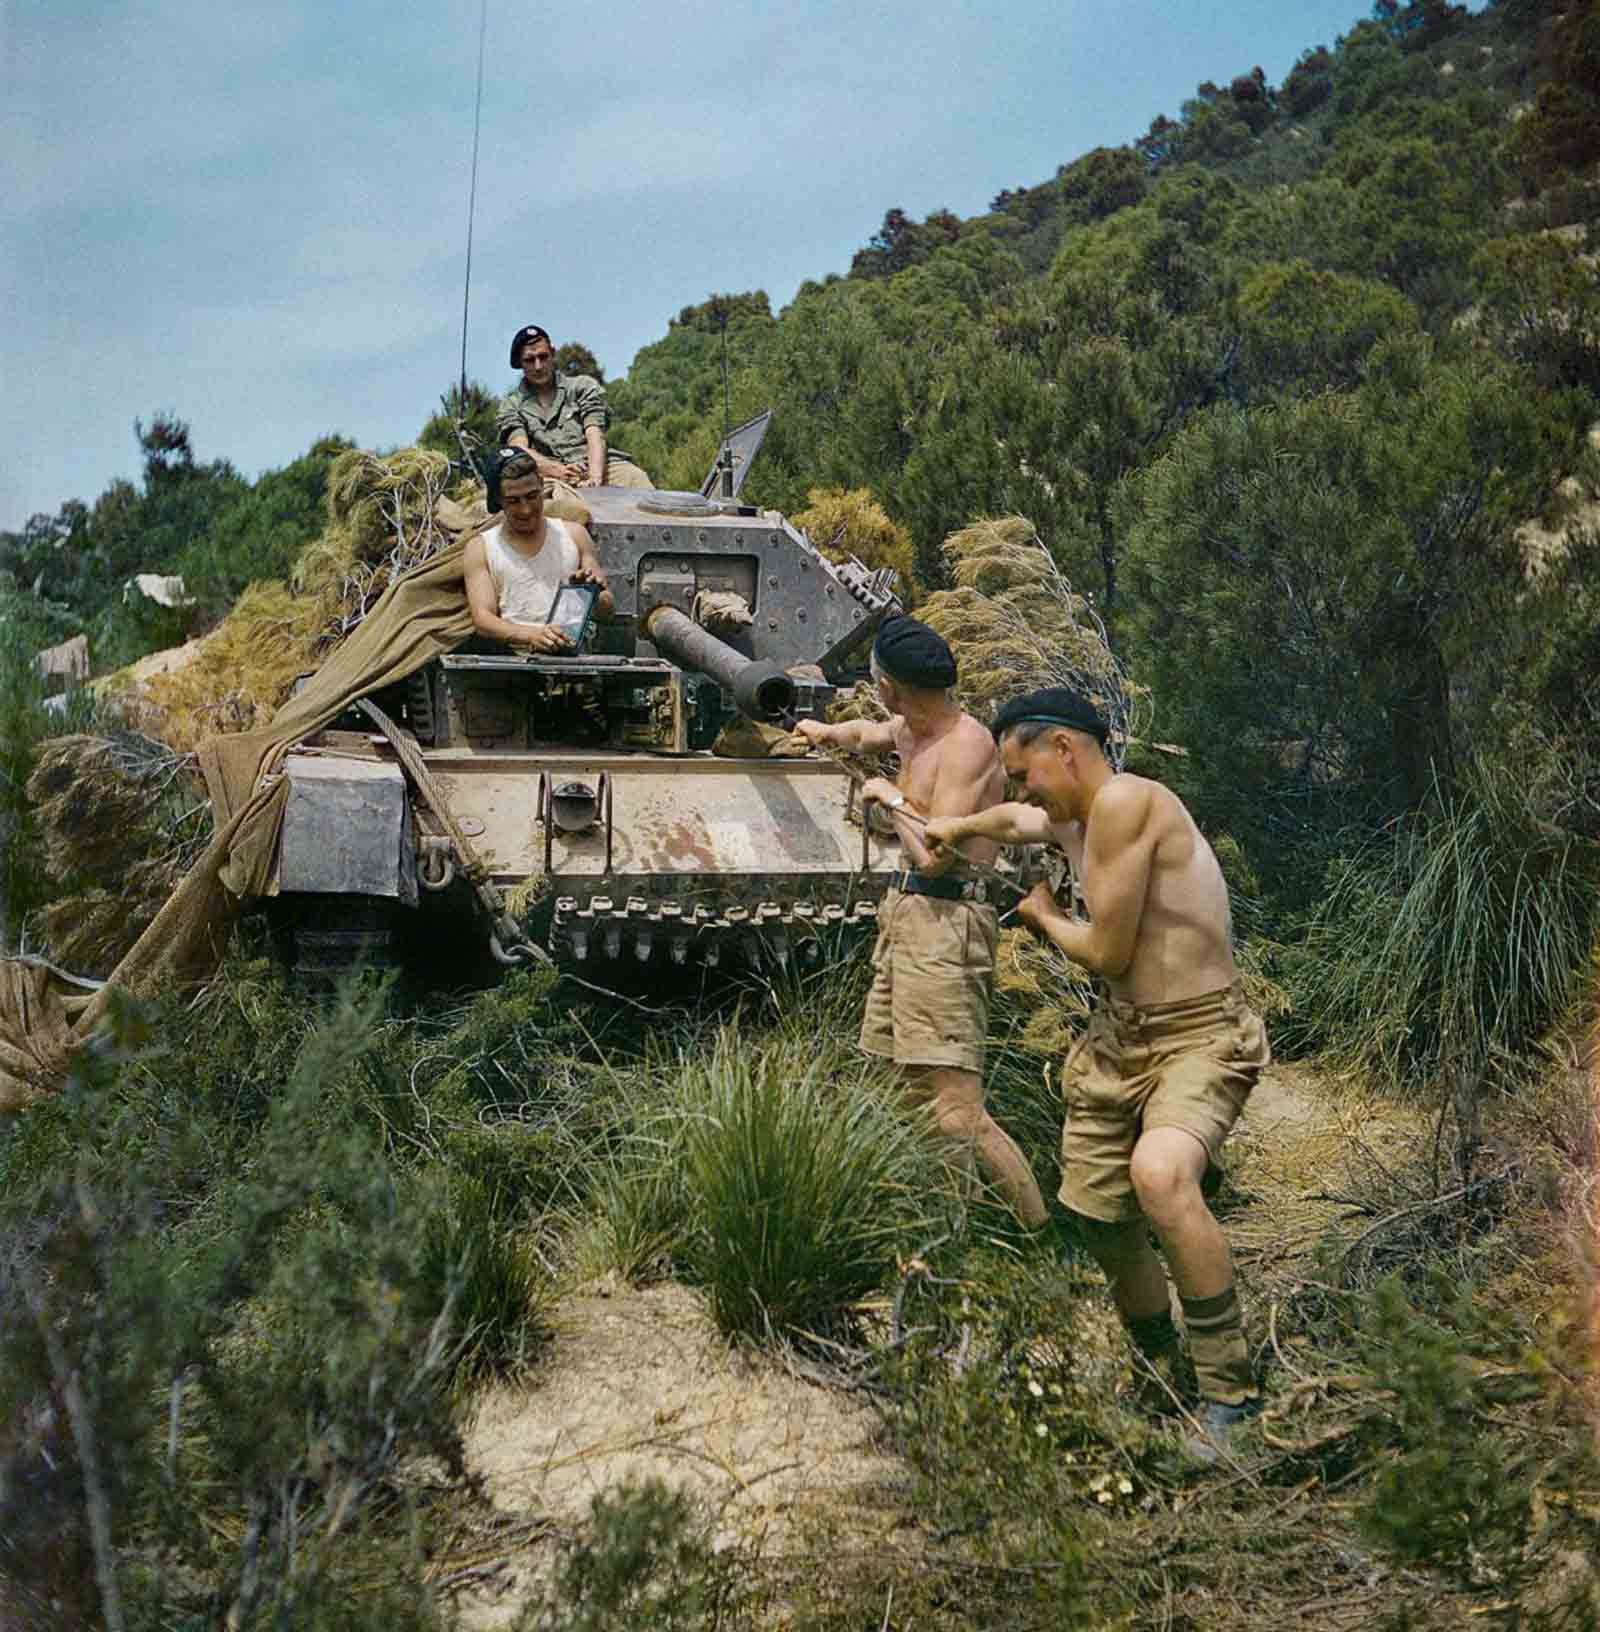 A crew from the 16th/5th Lancers, 6th Armoured Division, clean the gun barrel of their Crusader tank at El Aroussa in Tunisia. 1943.